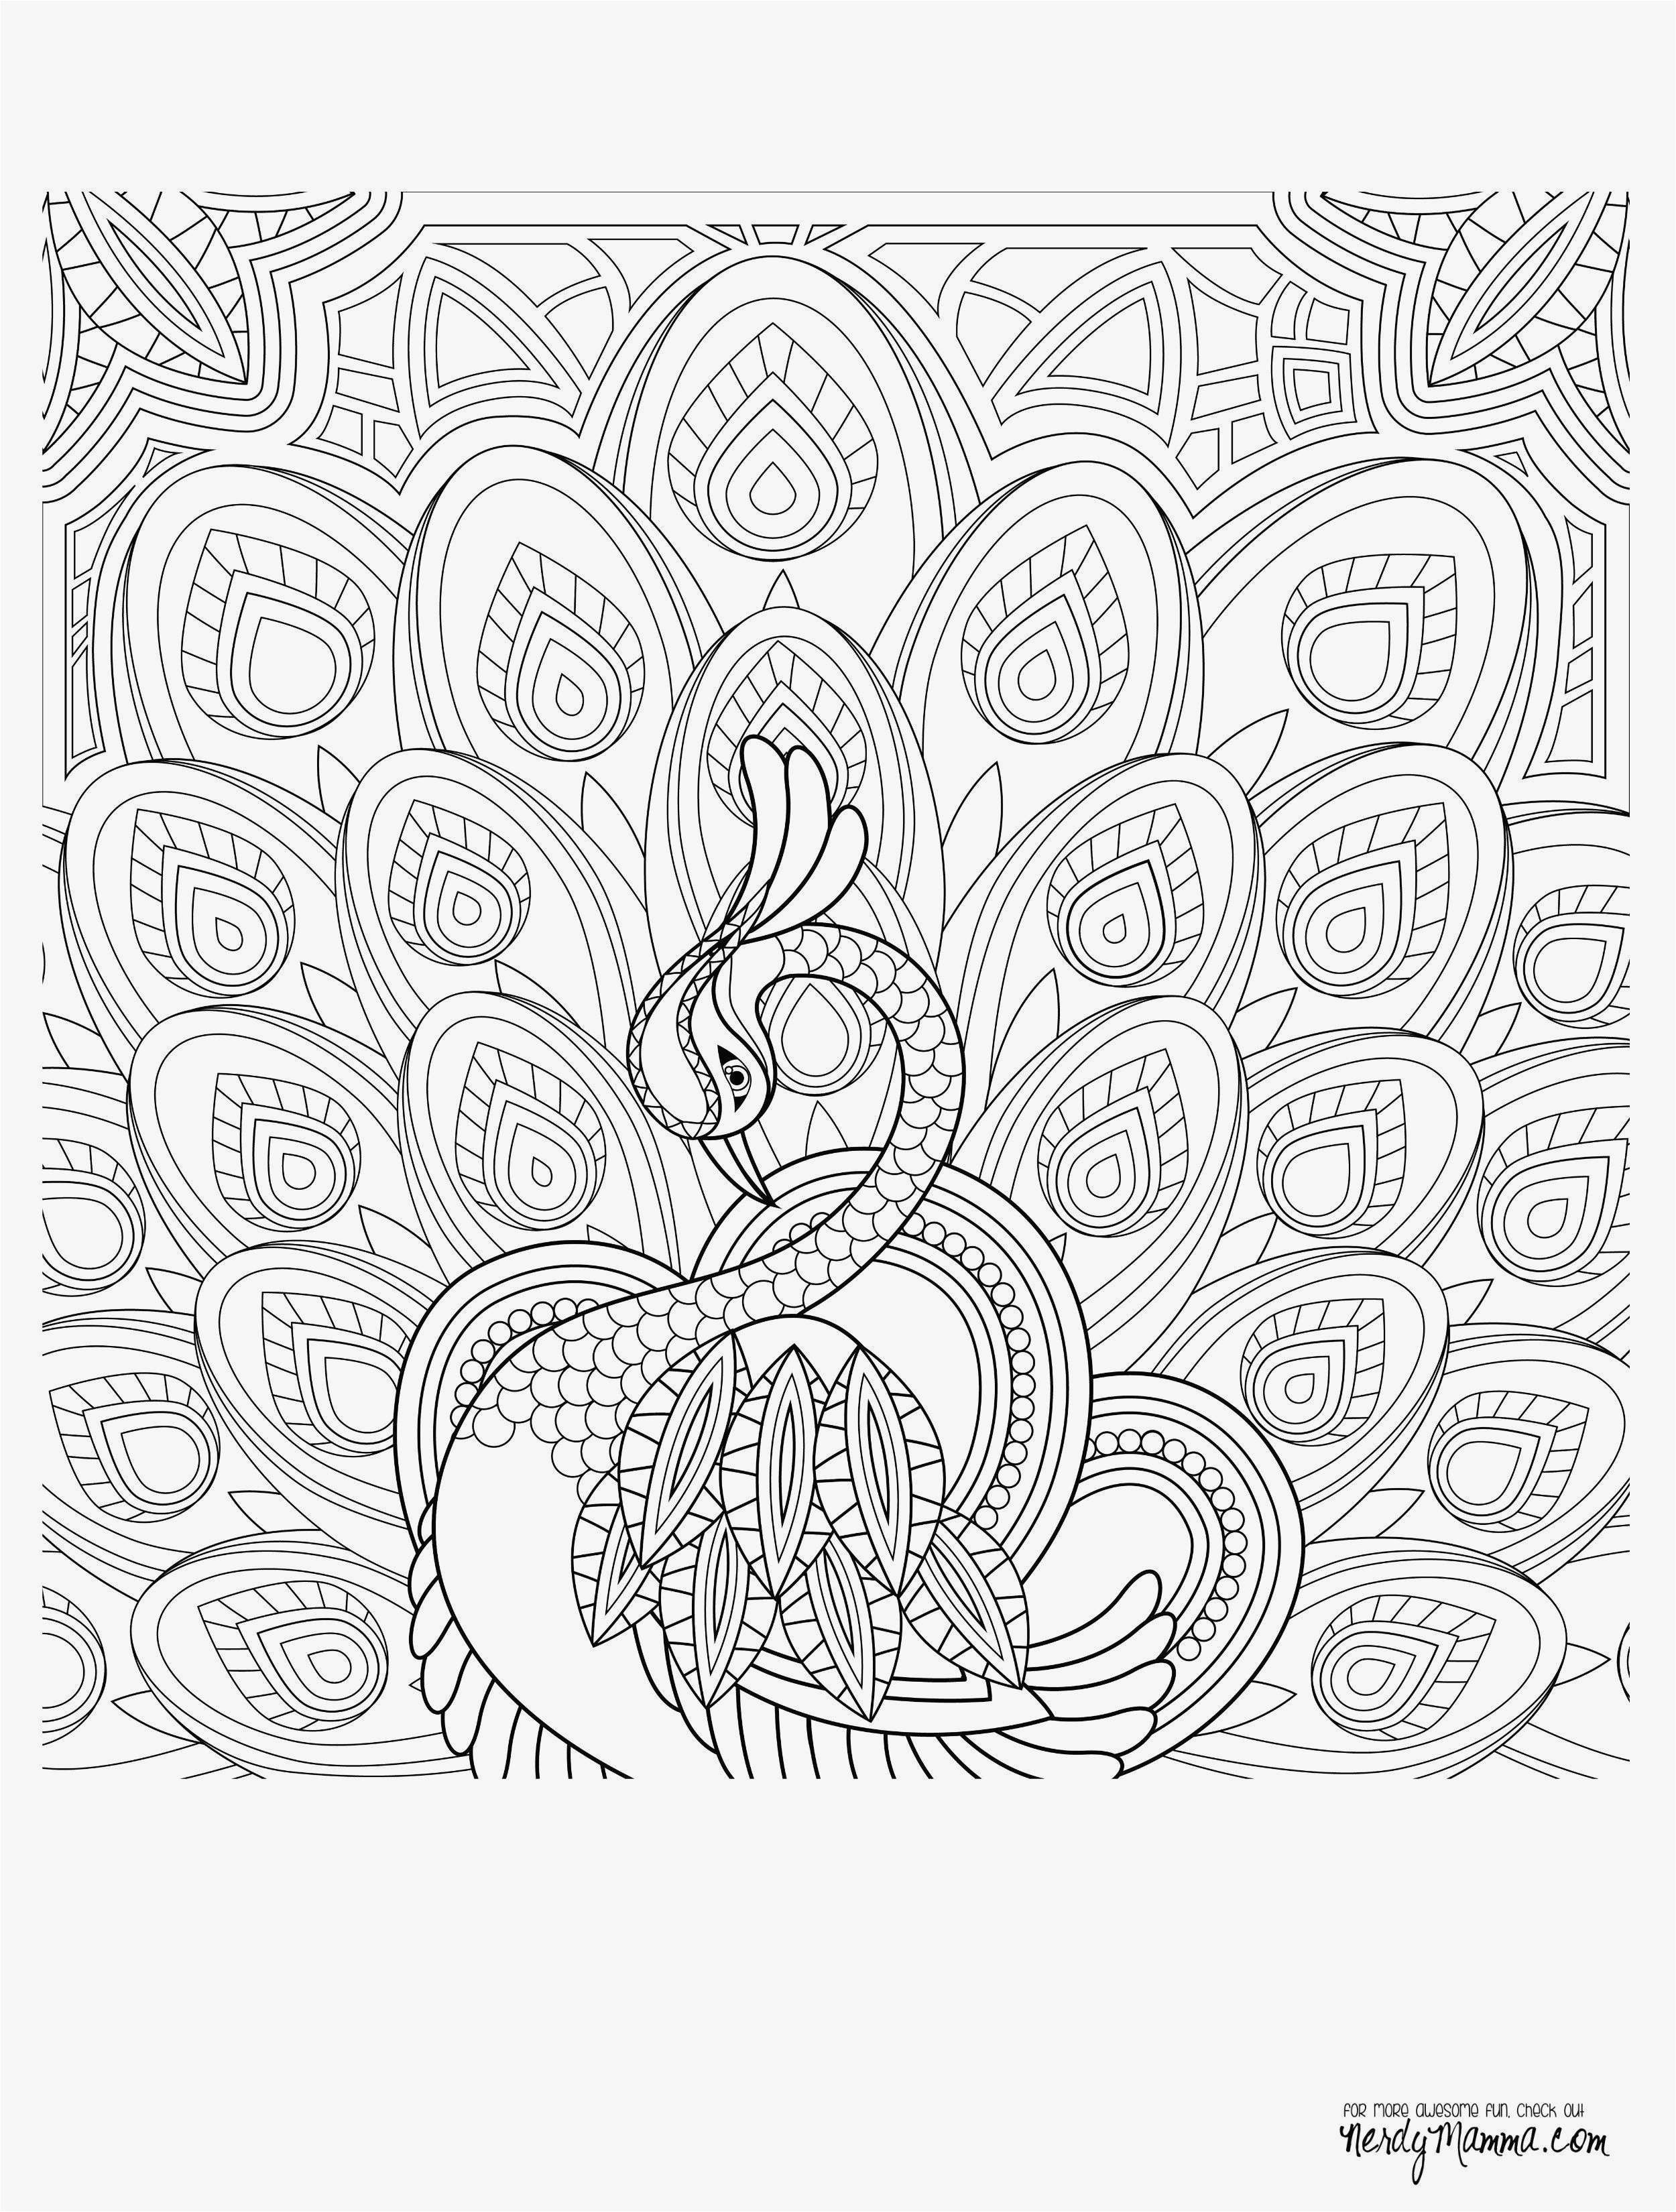 Ariel Coloring Pages Online  Printable 19m - Save it to your computer